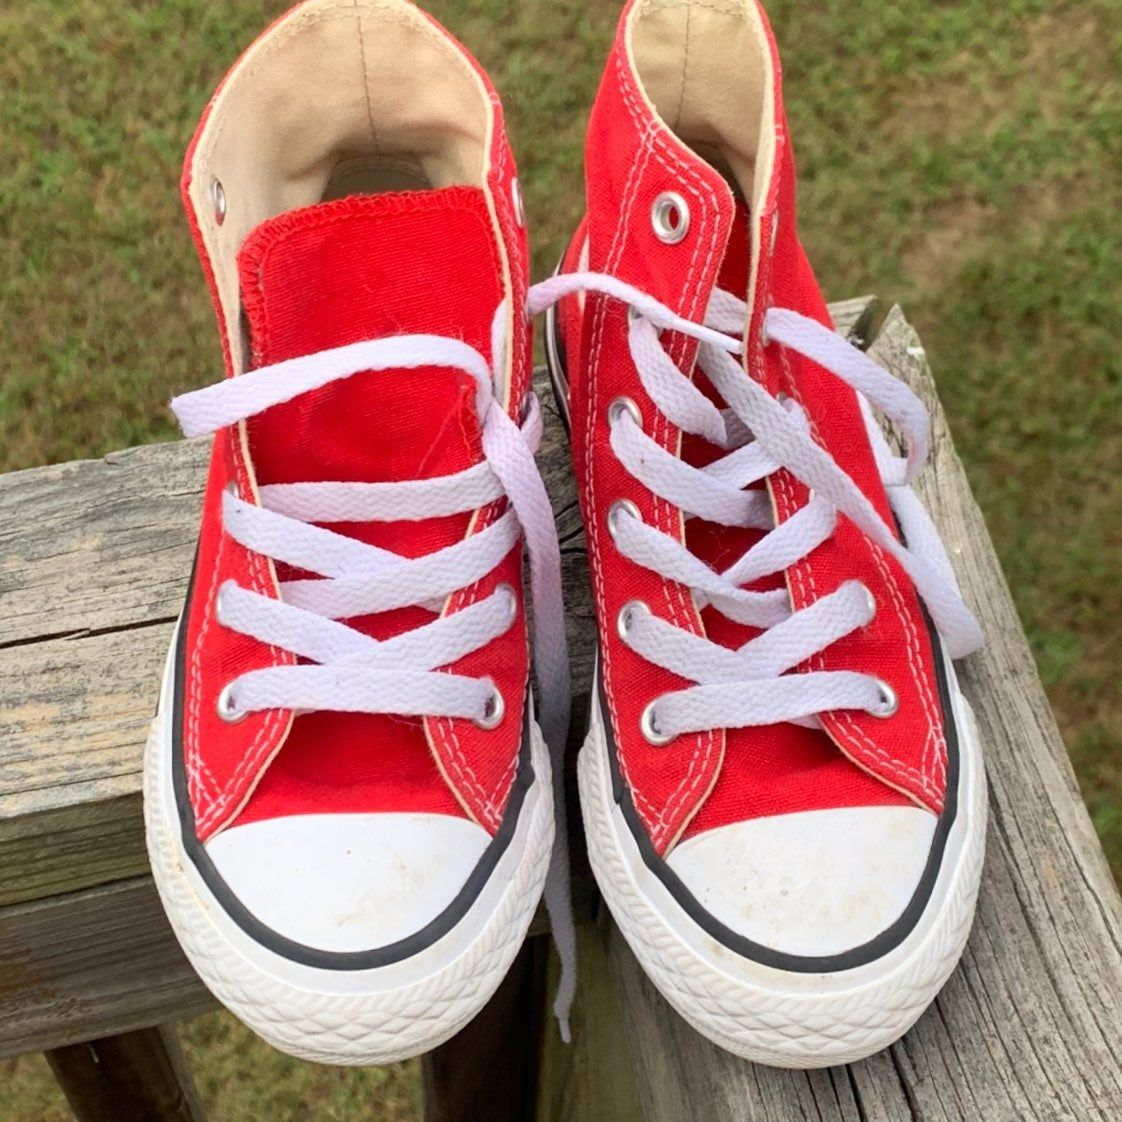 Kids Red High-Top Converse Size 11